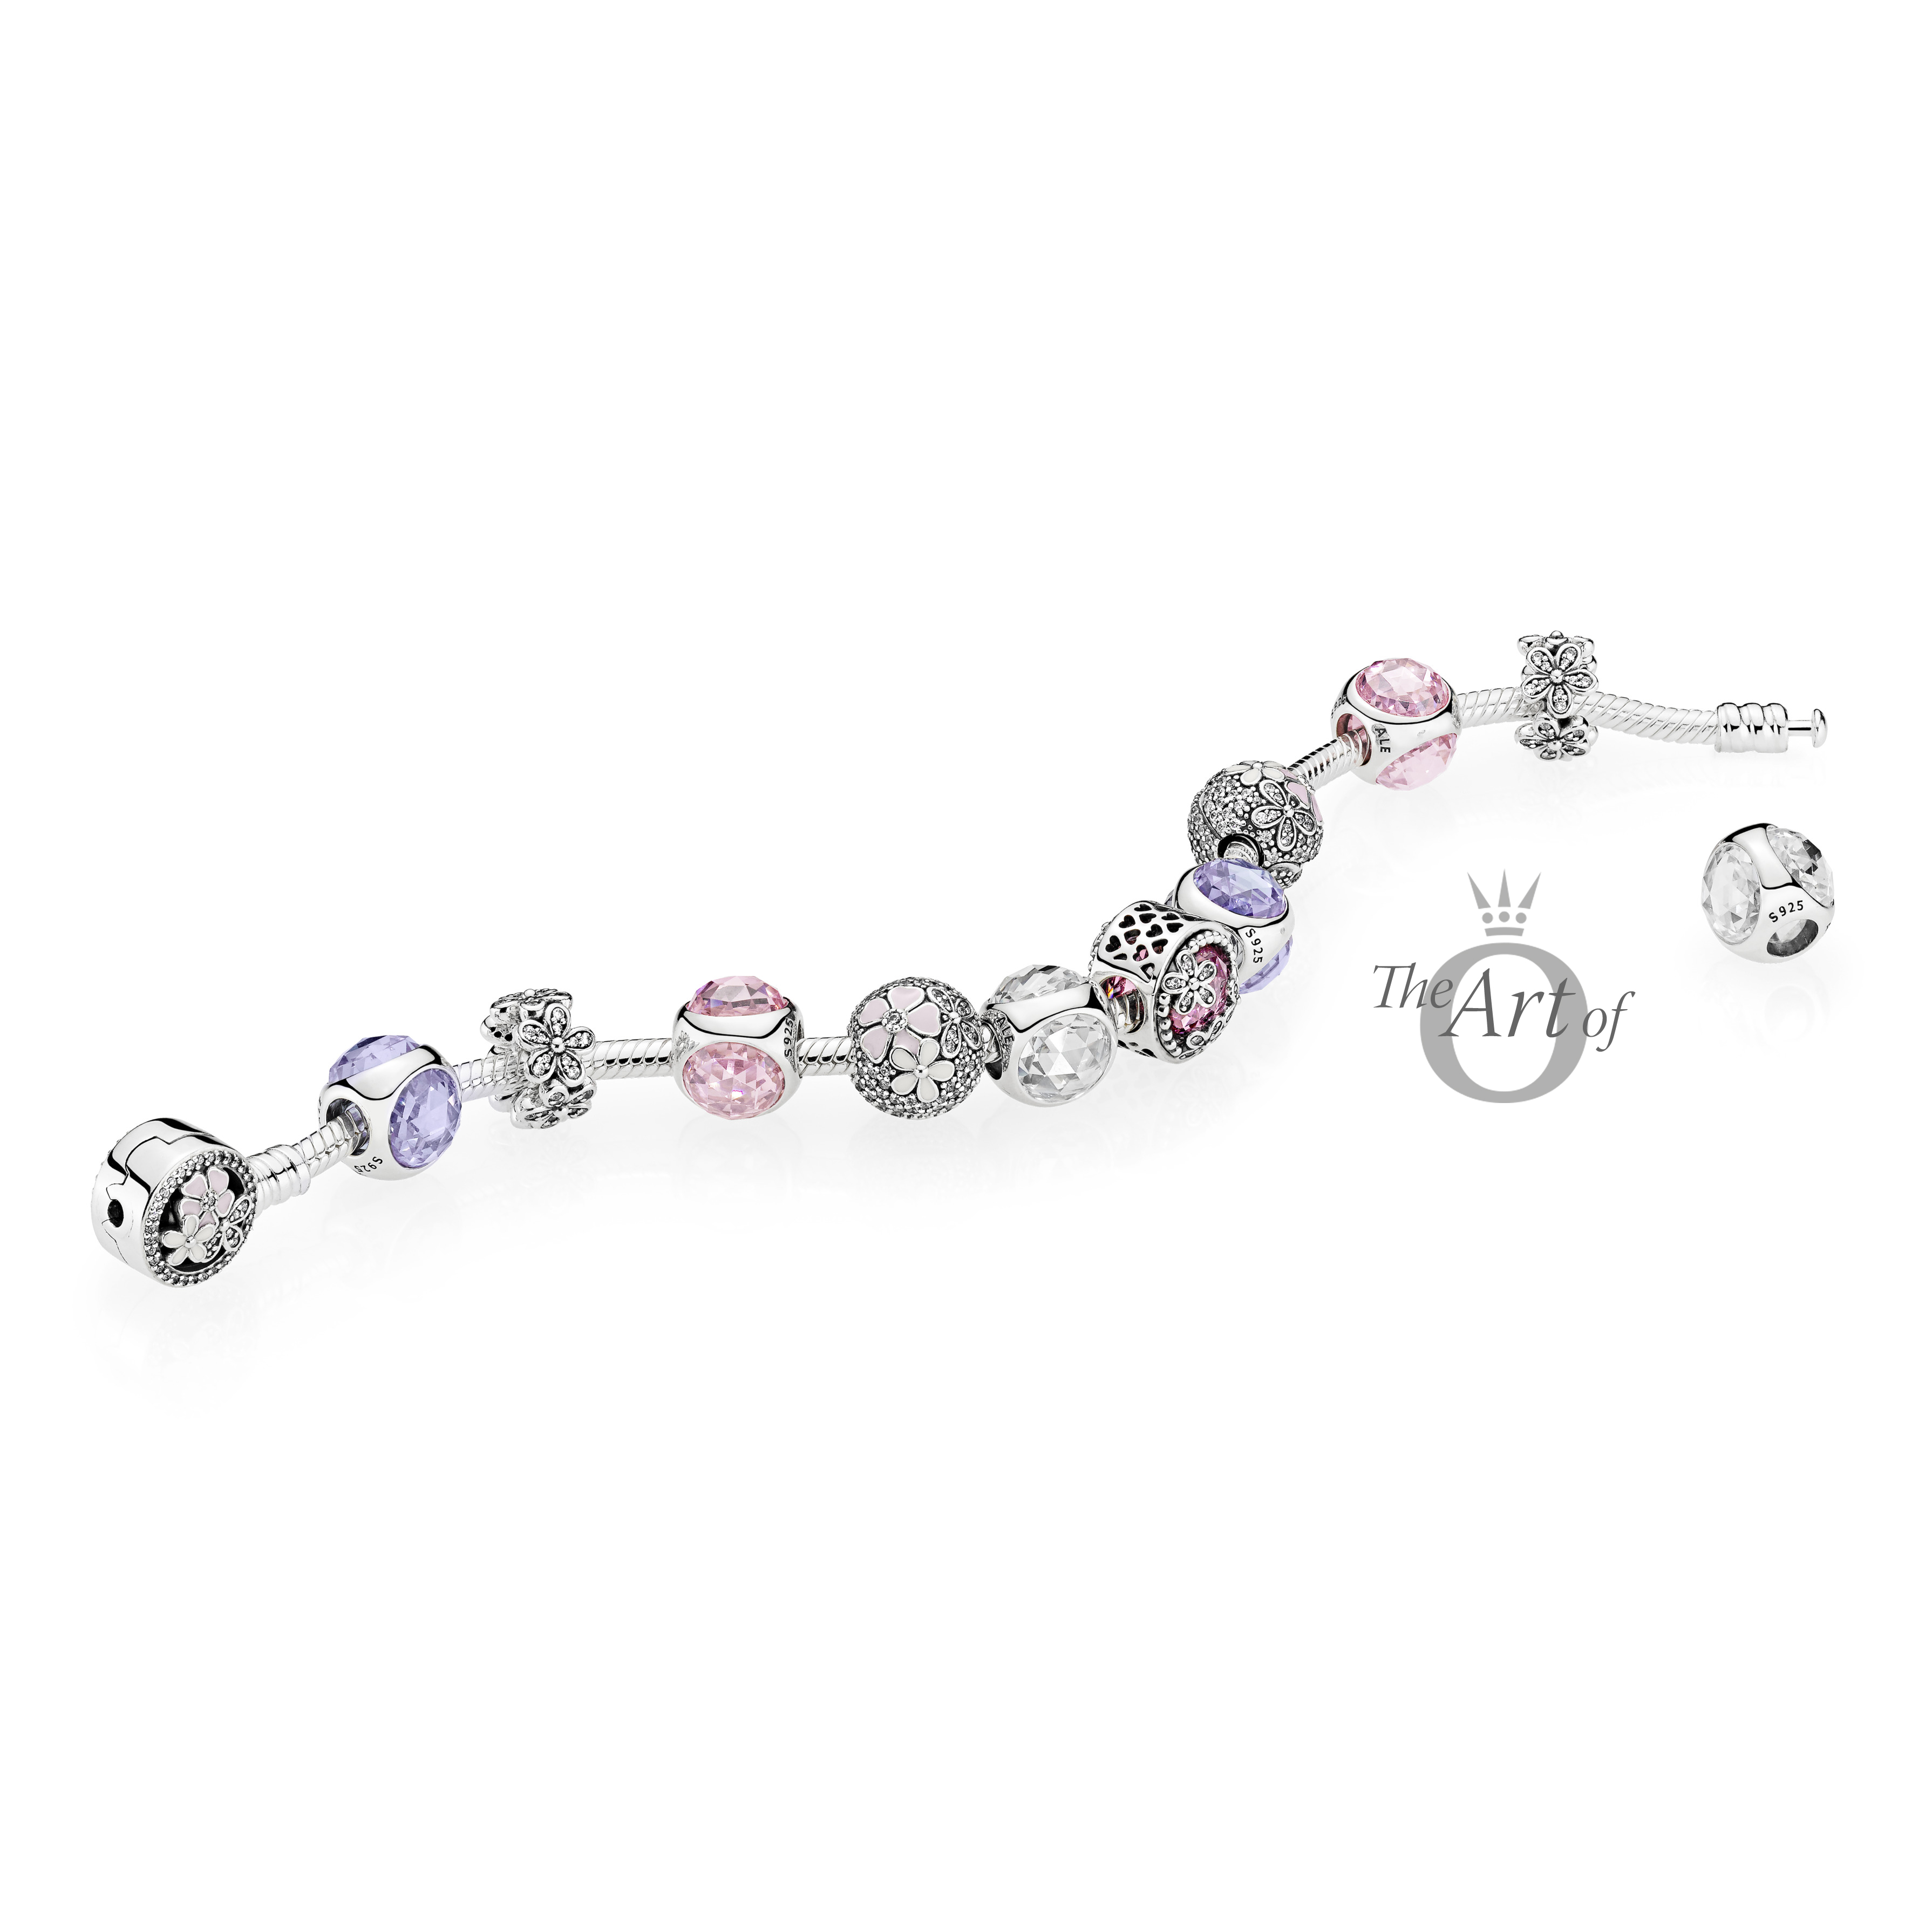 Pandora Spring 2017 Collection Preview